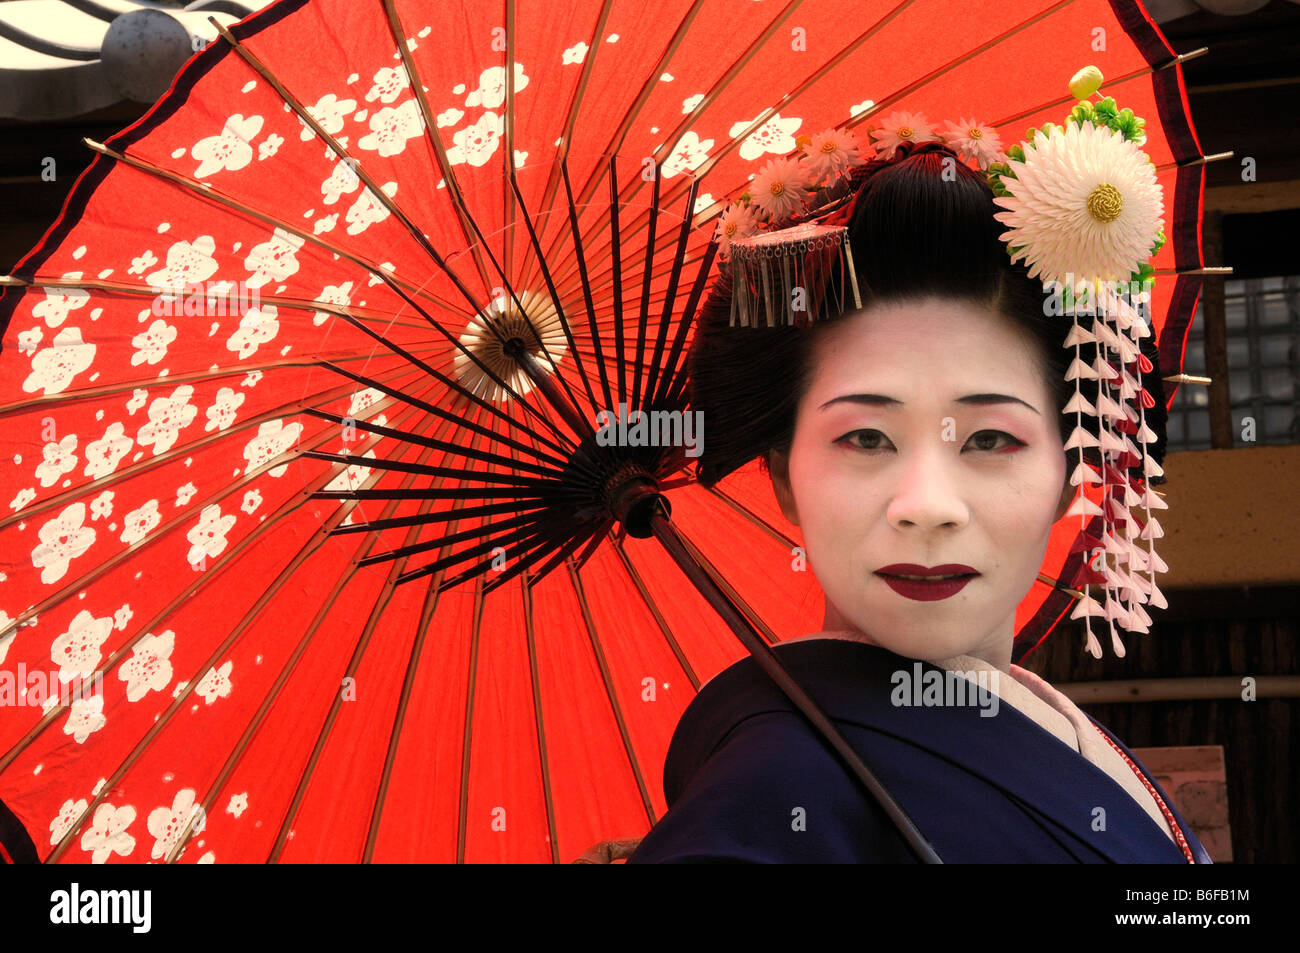 a maiko a trainee geisha carrying a red sun parasol or. Black Bedroom Furniture Sets. Home Design Ideas